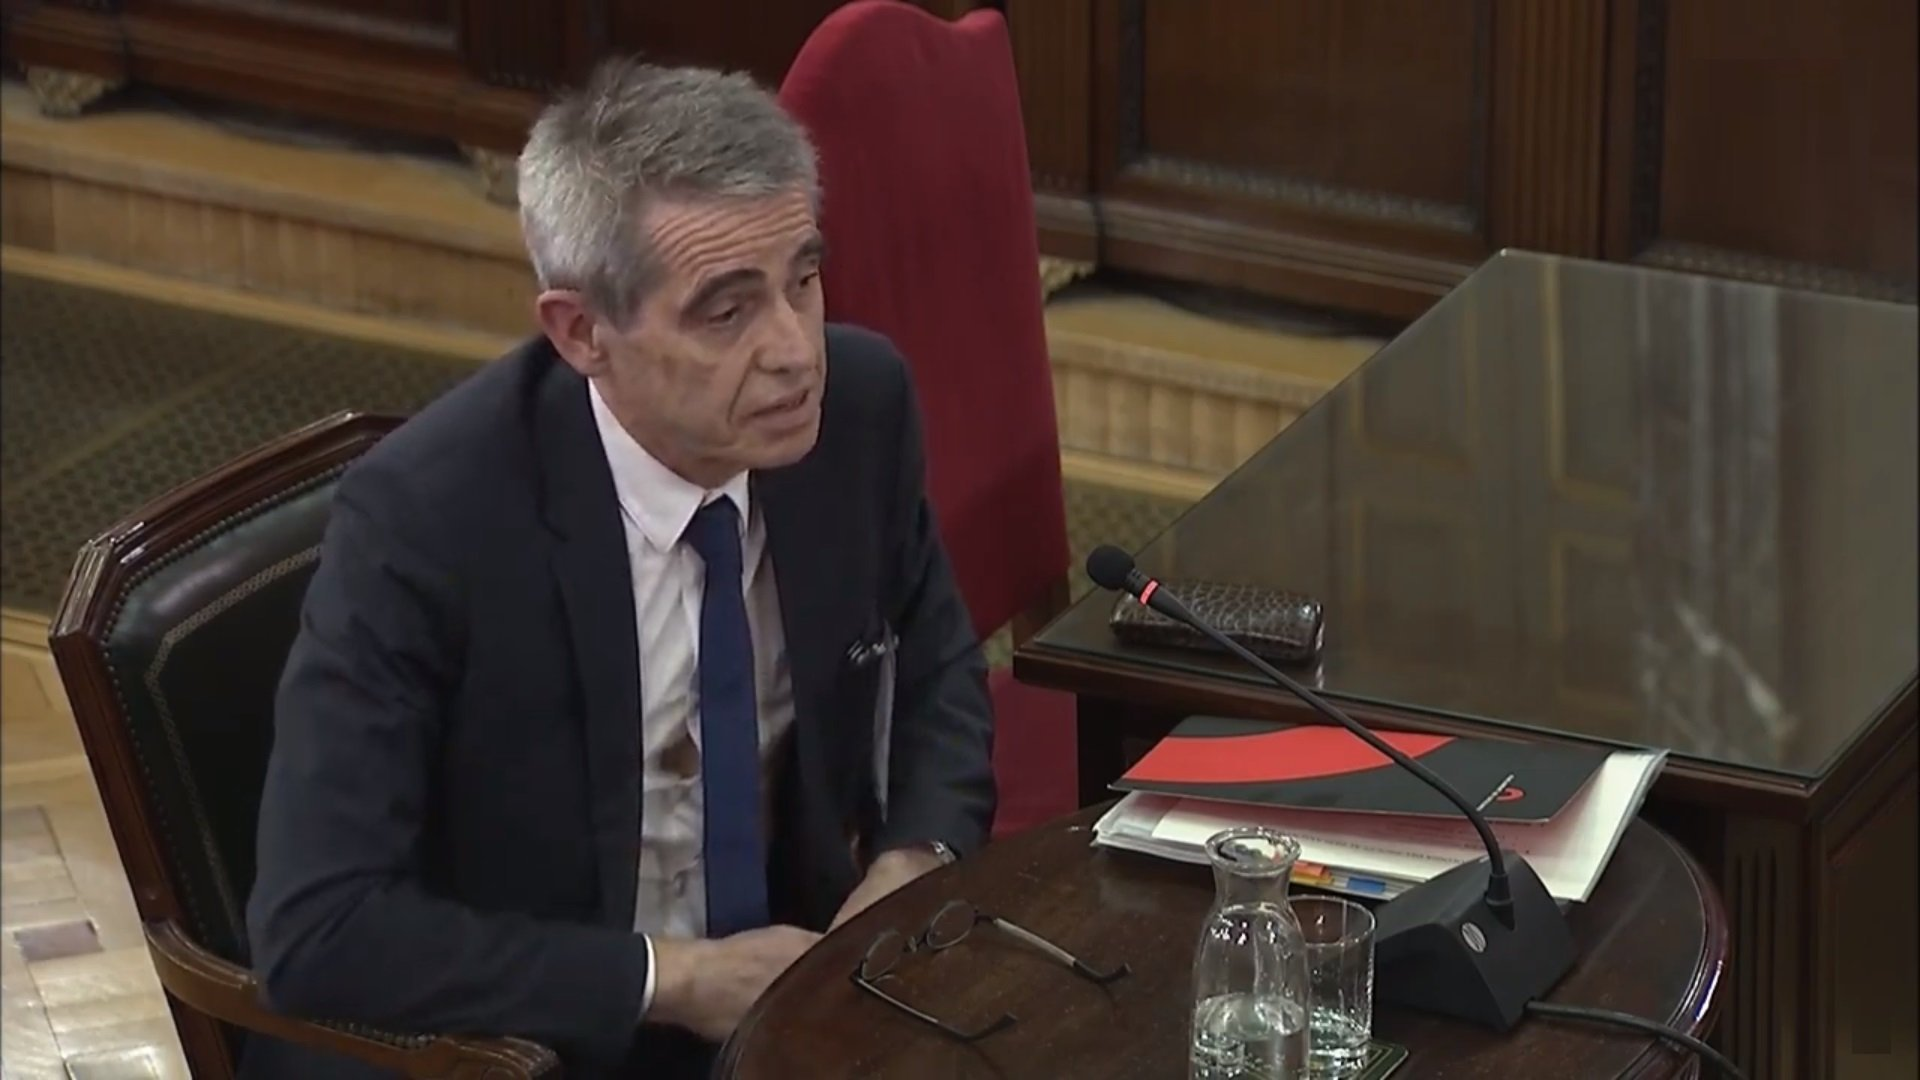 Antoni Bayona, former chief counsel of the Catalan parliament, giving evidence